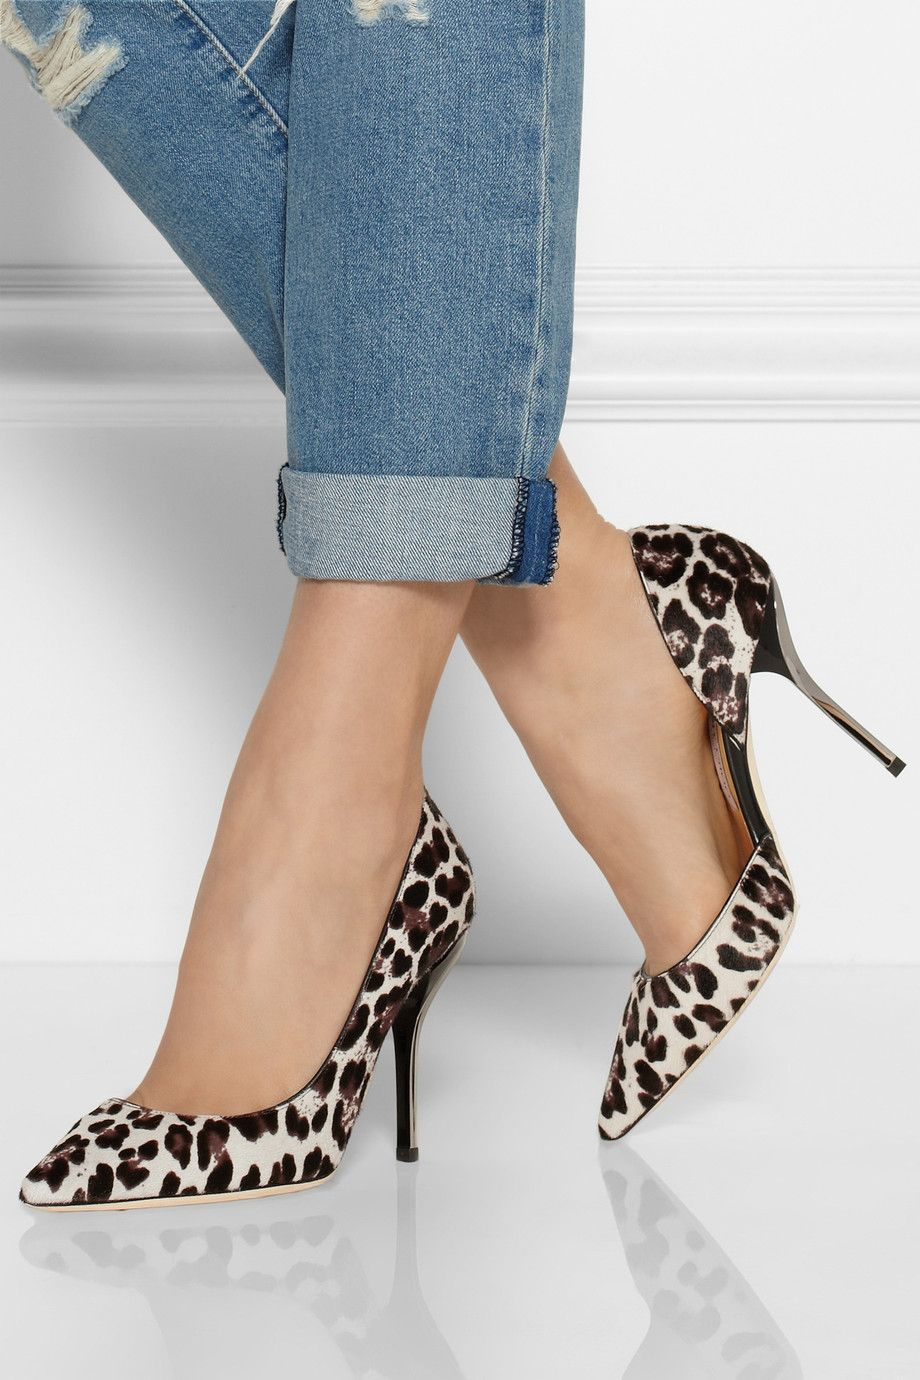 926471ec4315 JIMMY CHOO Willis leopard-print calf hair pumps. Best name EVER ...